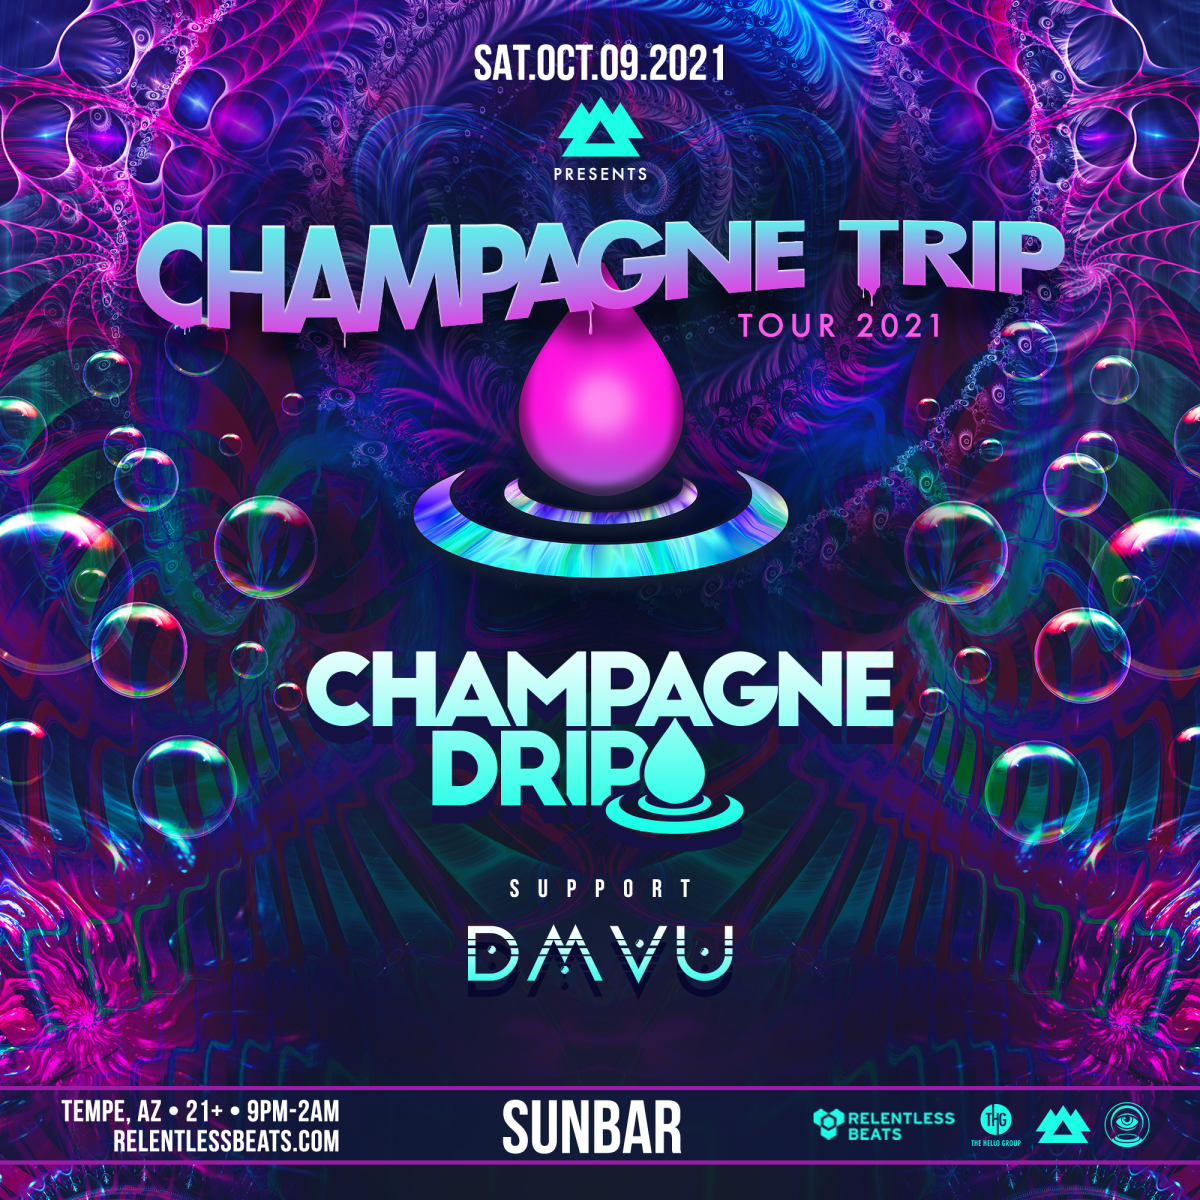 Flyer for Champagne Drip